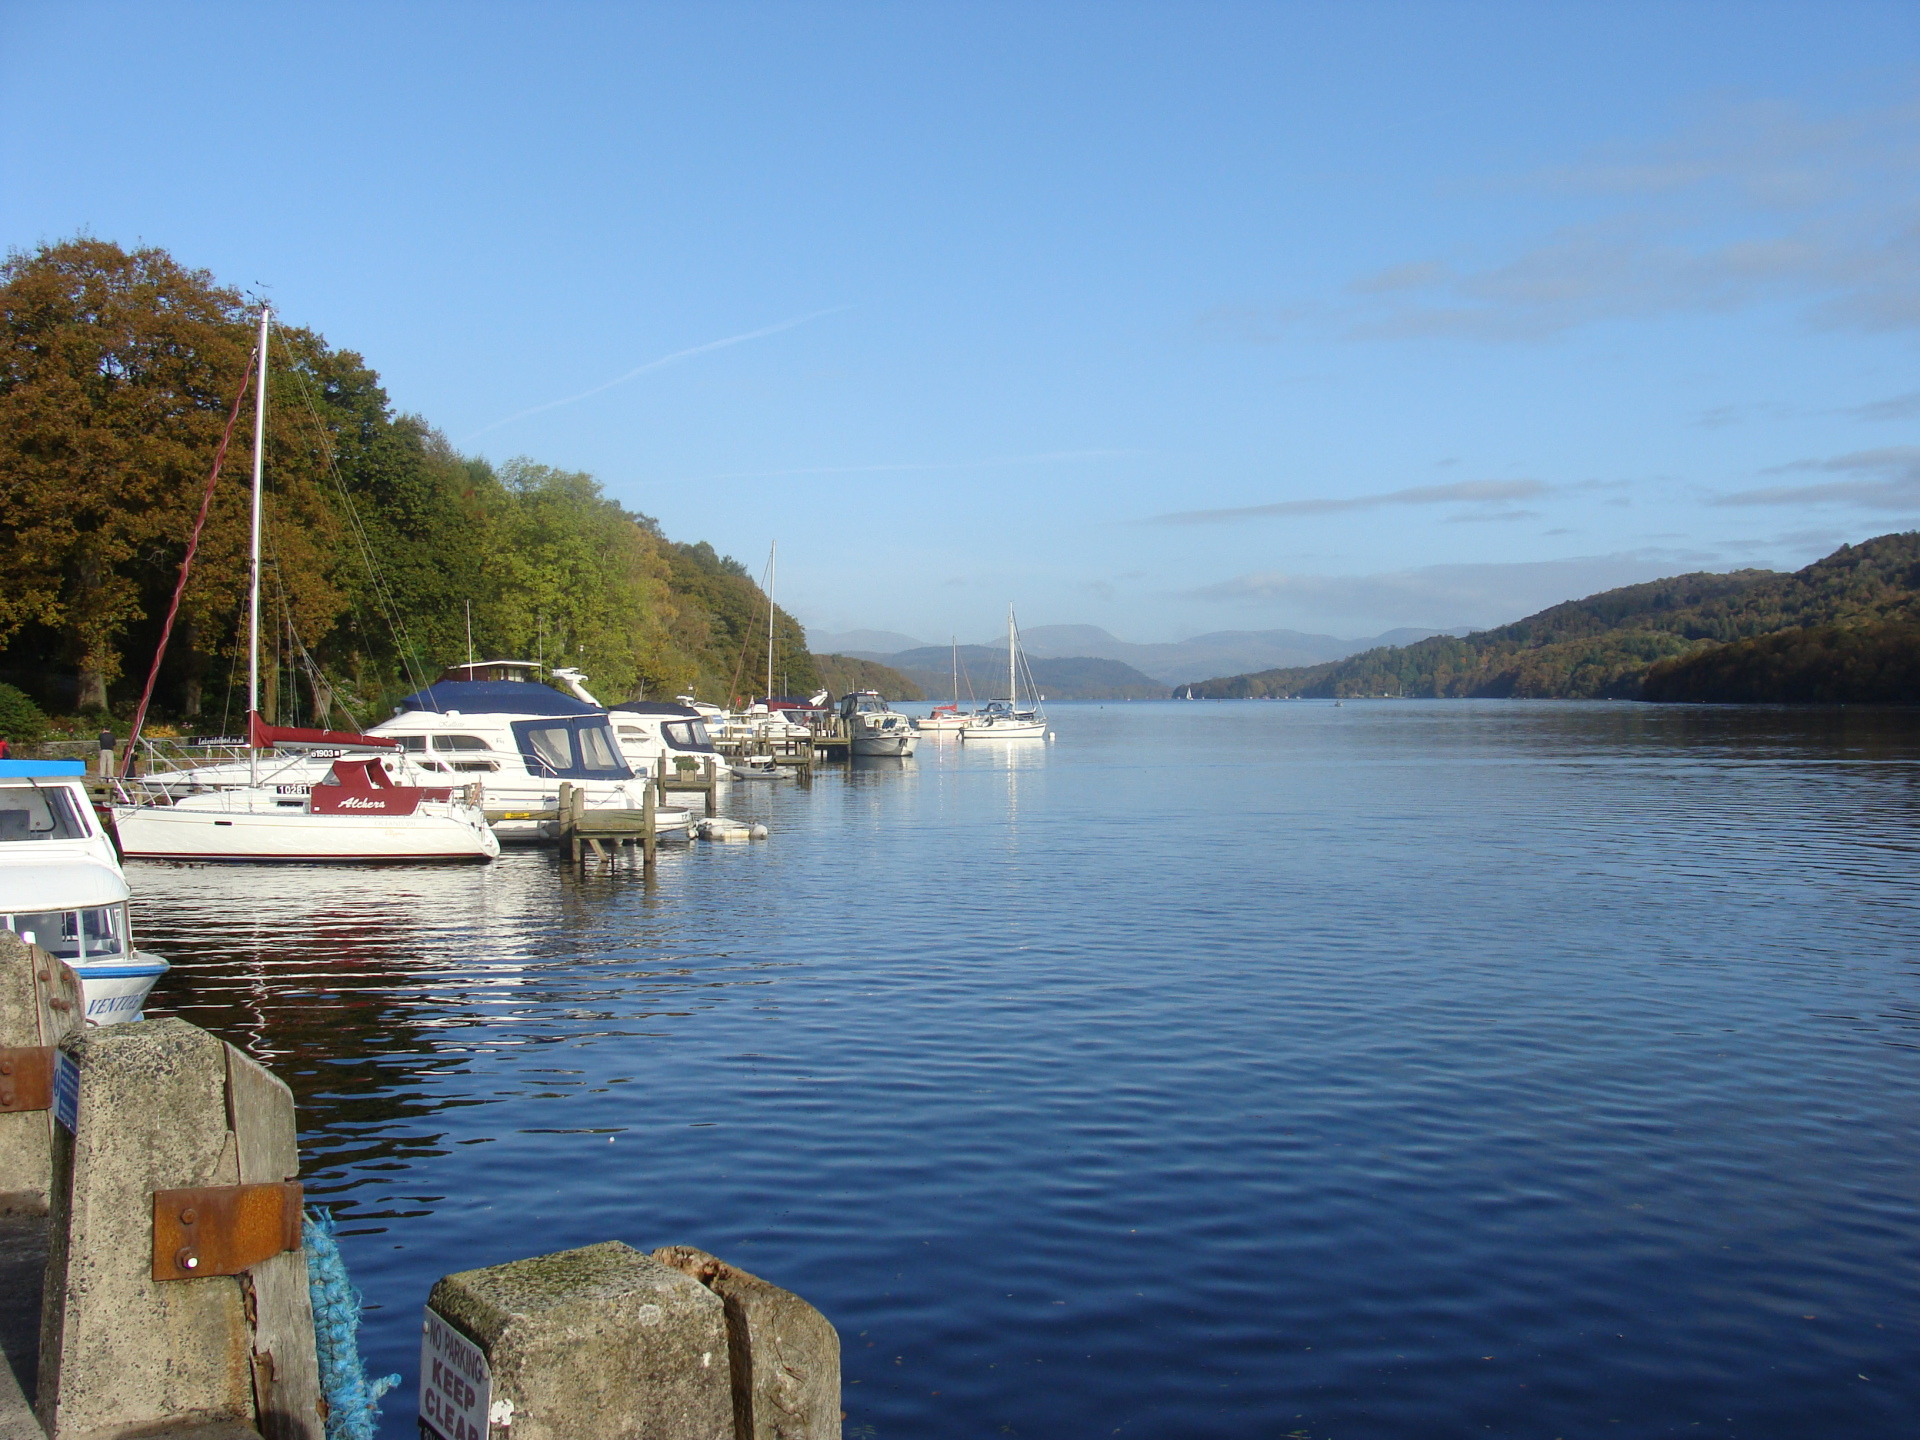 Boating on Windermere